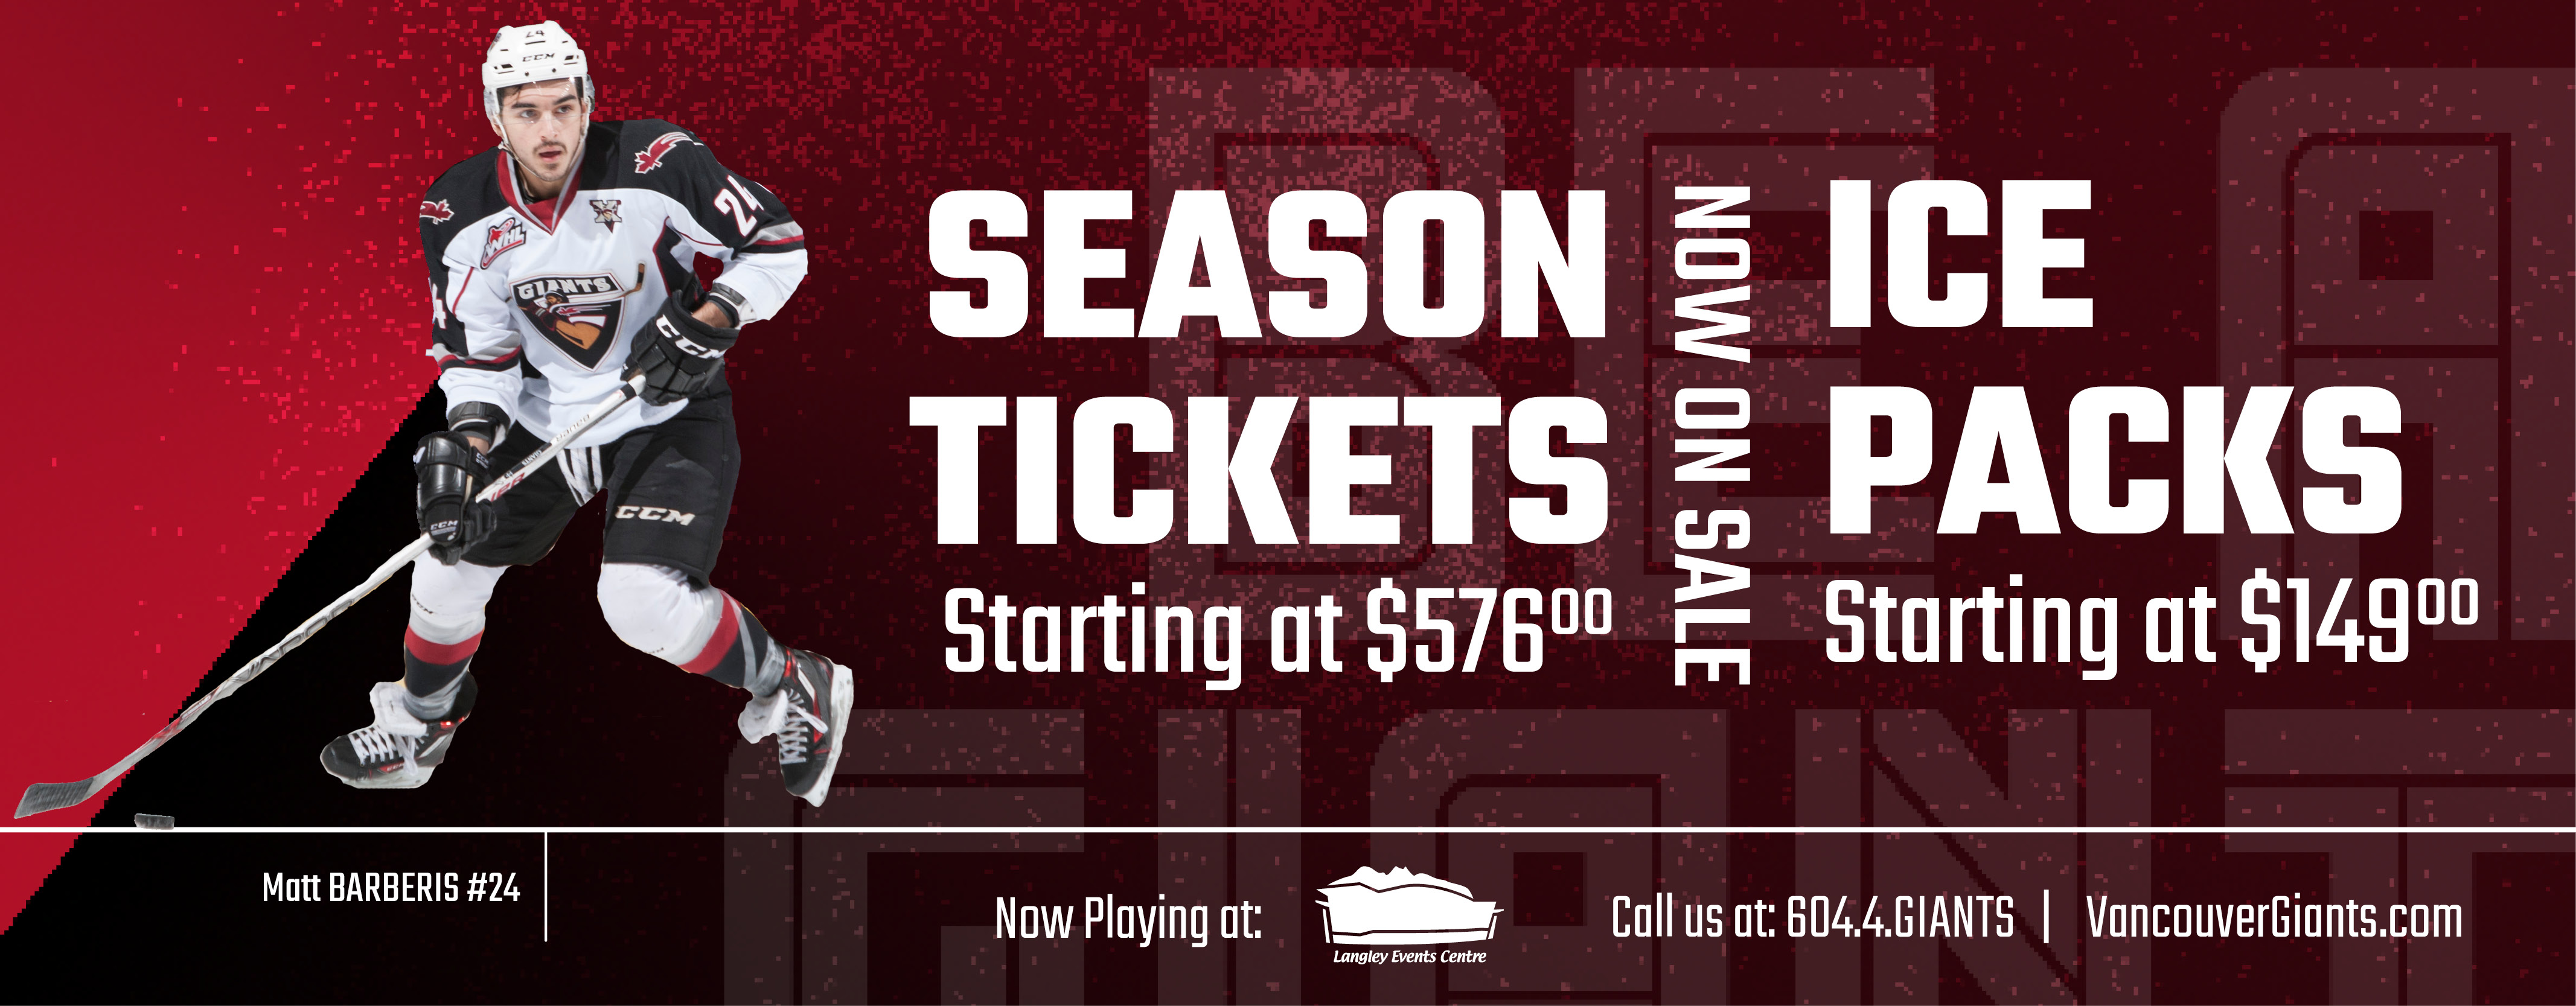 Splash Ad - Season Tix & Ice Packs